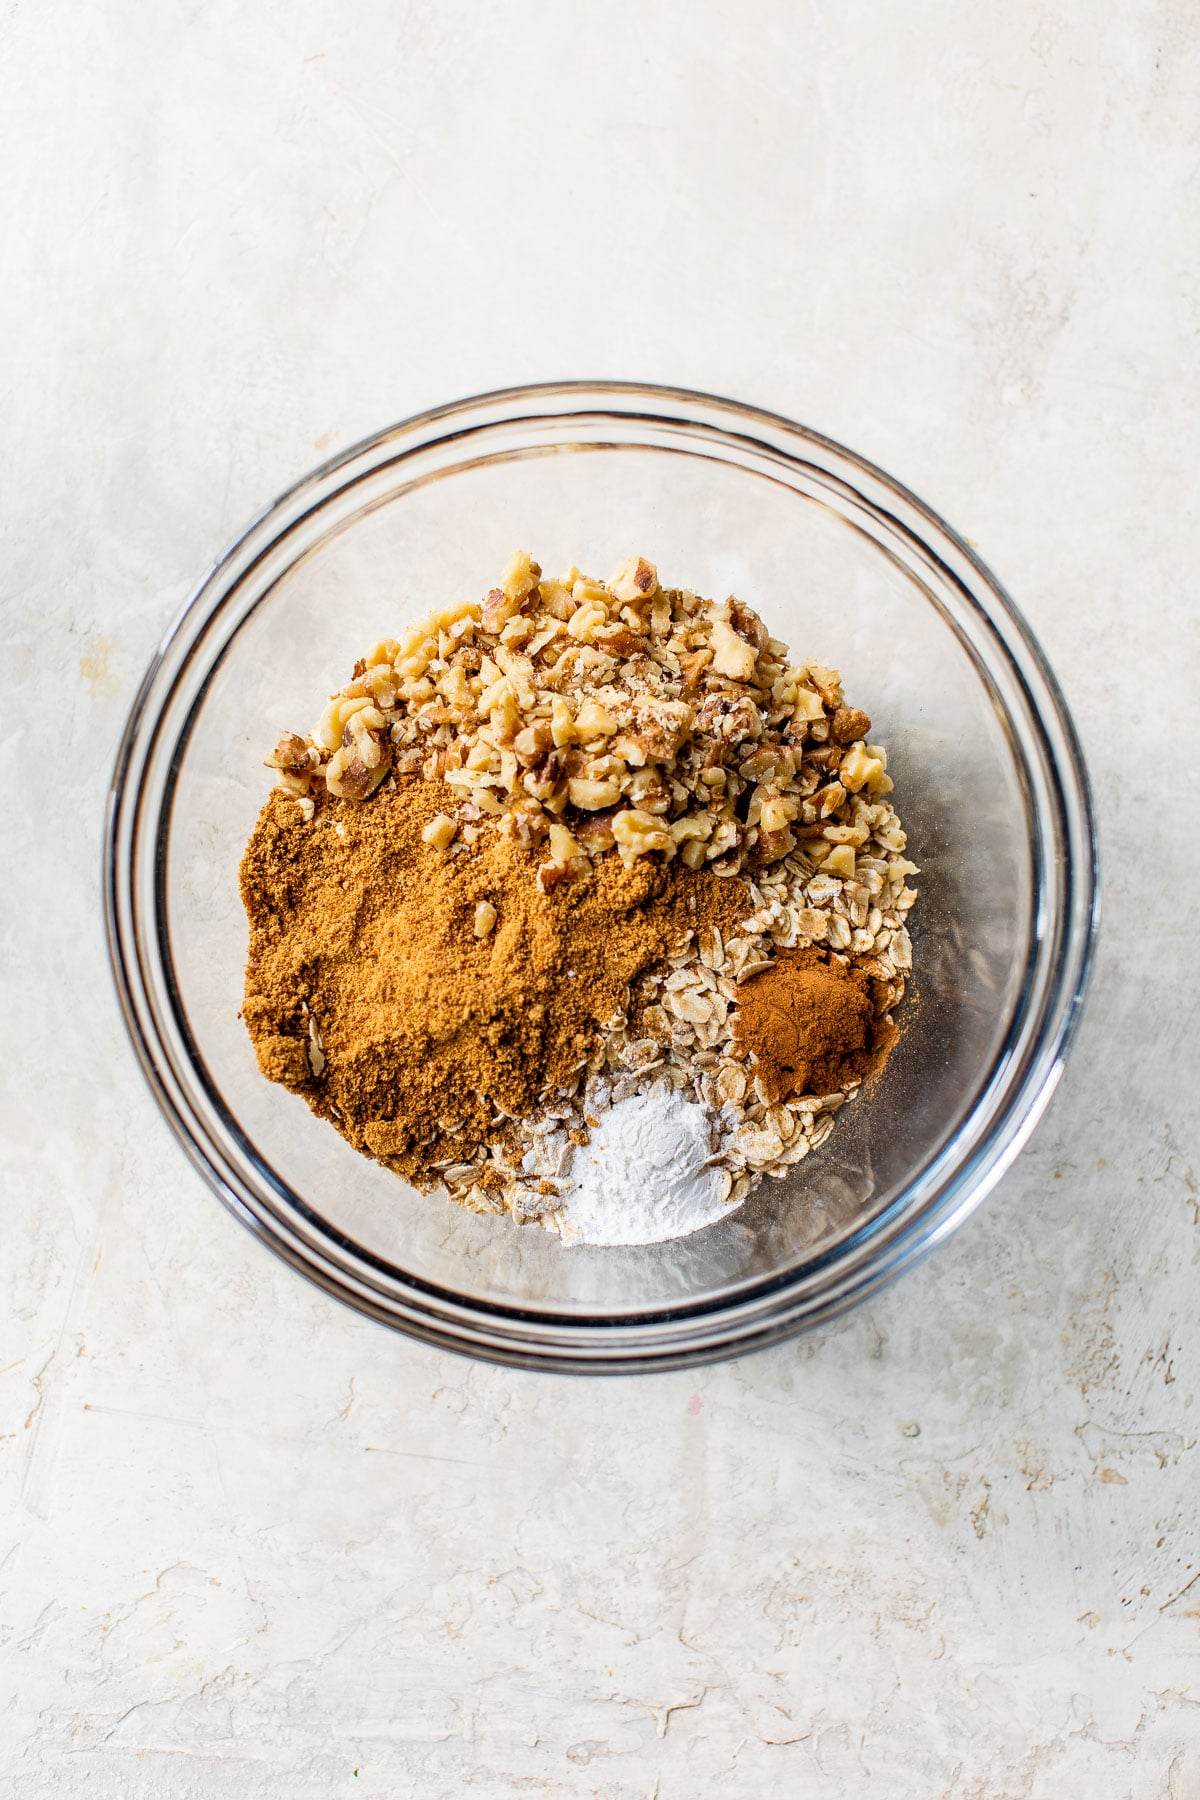 dry oatmeal ingredients in a glass bowl